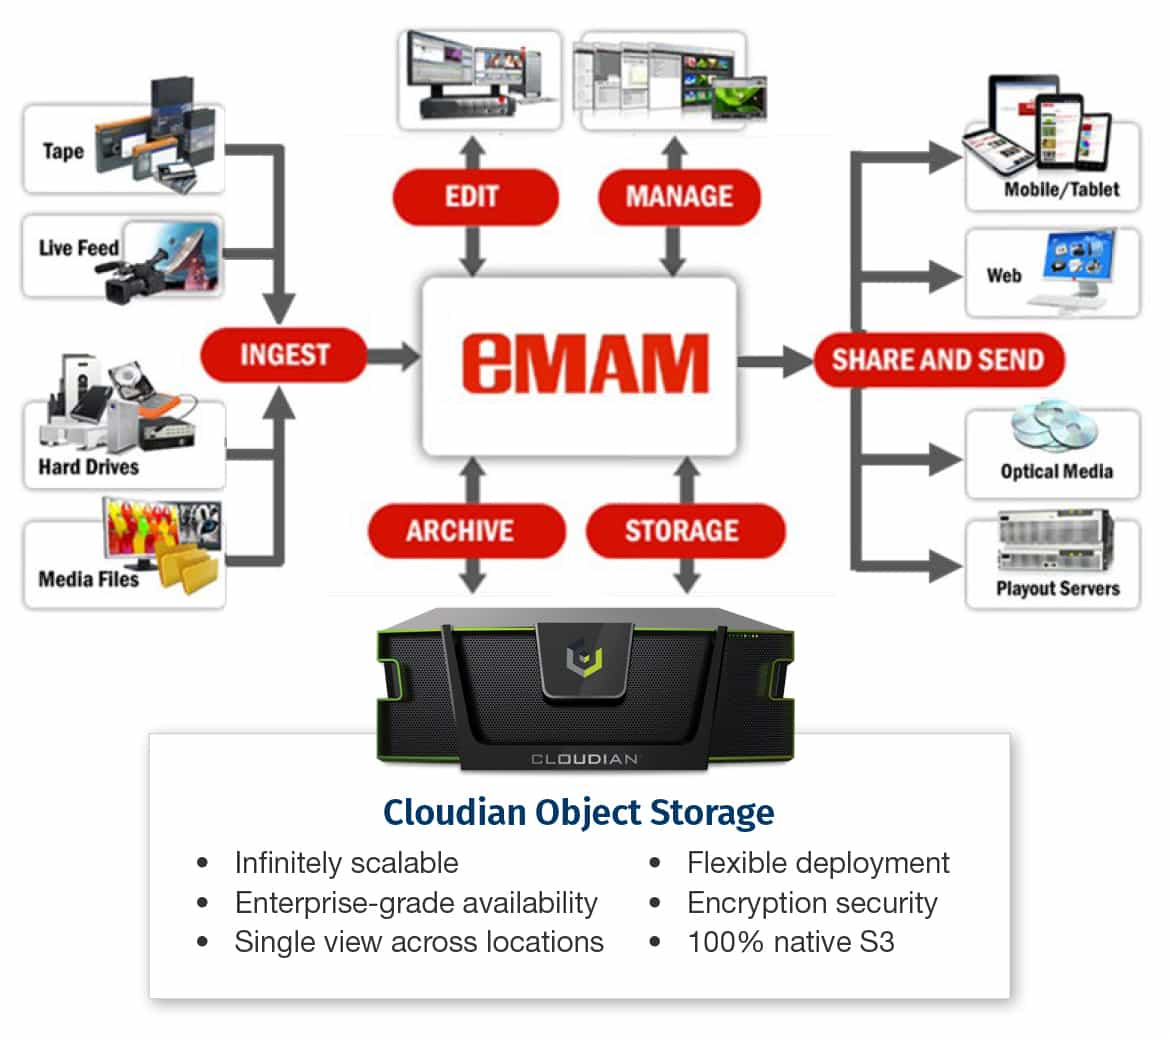 eMAM and Cloudian media asset management